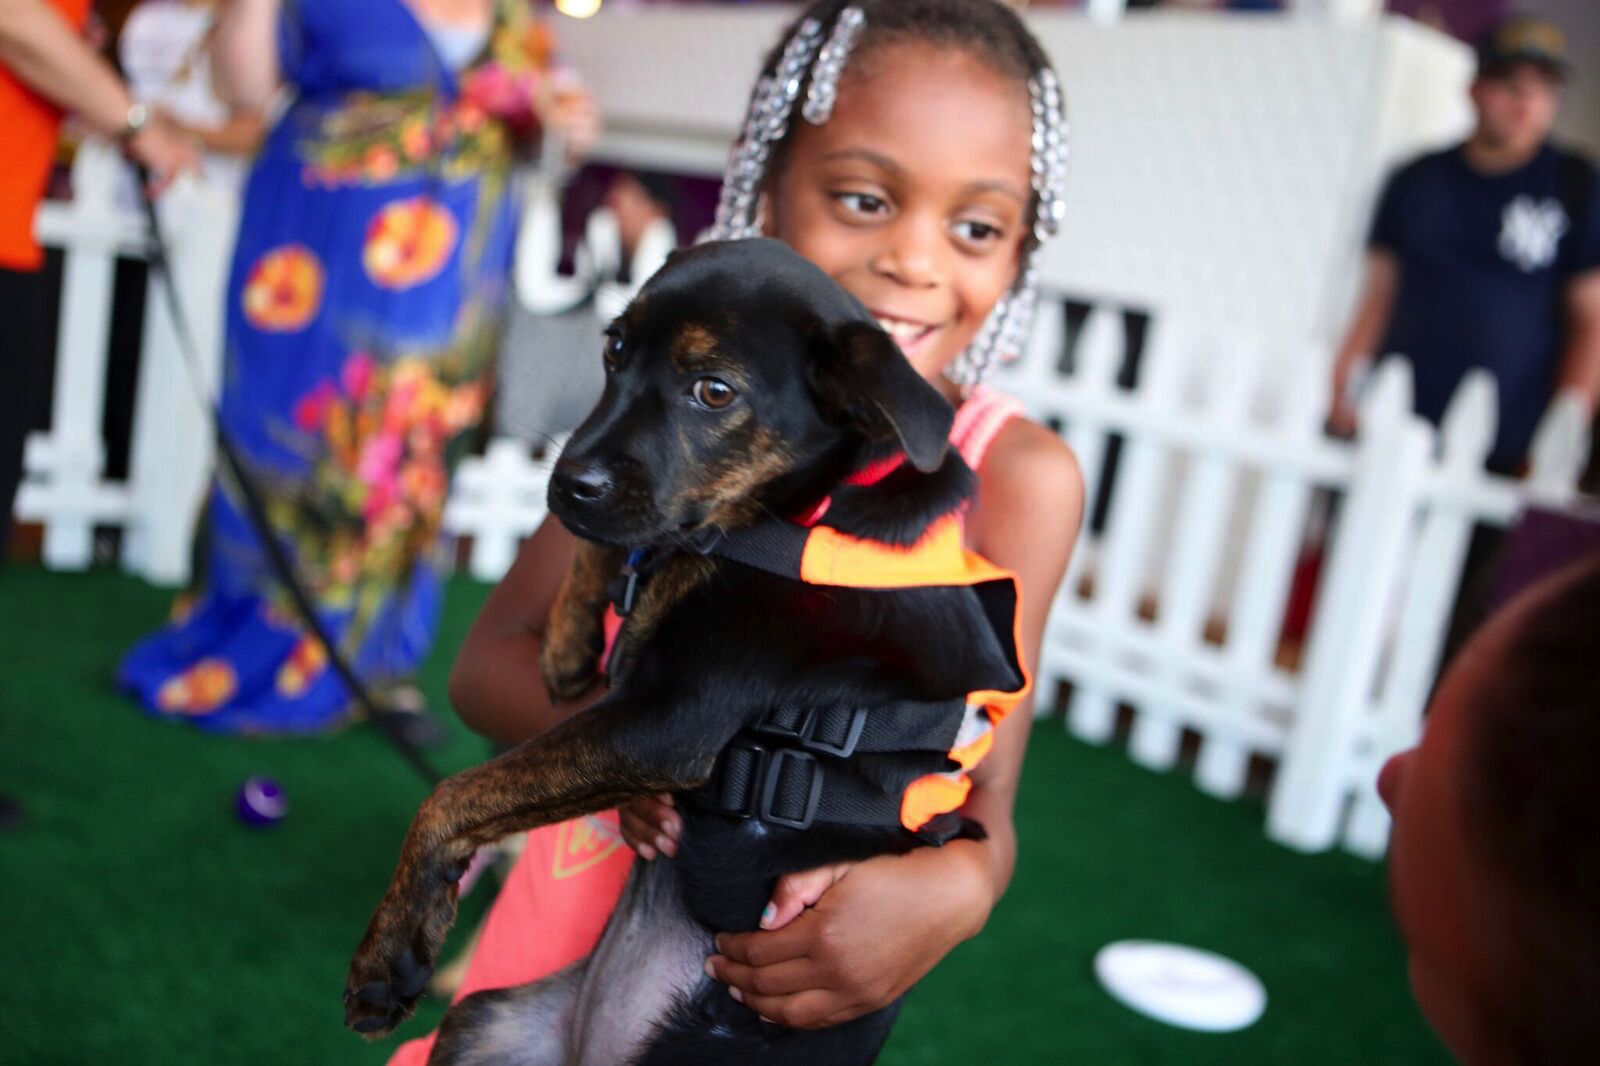 These Adorable Puppies Are Looking For Their Forever Homes